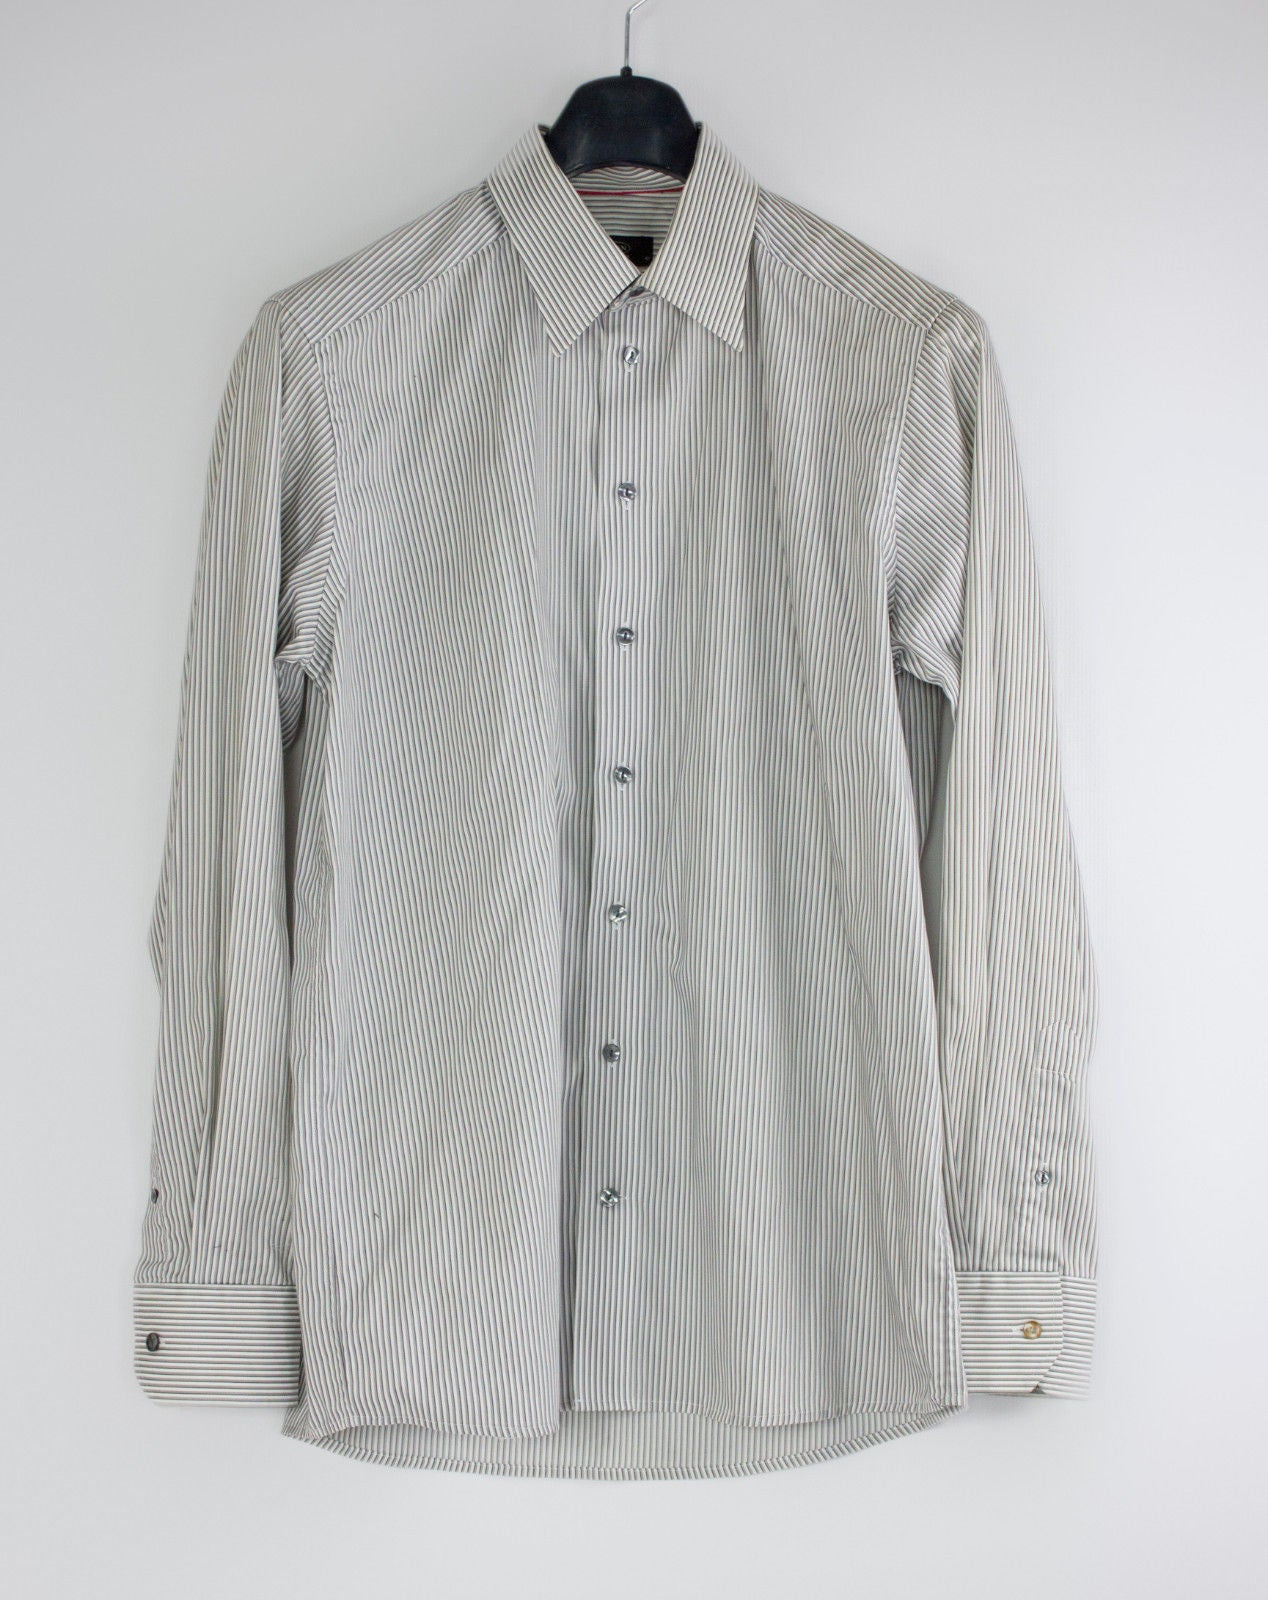 ETON  Striped Pointed Collar Shirt, 42 - 16 1/2 - secondfirst